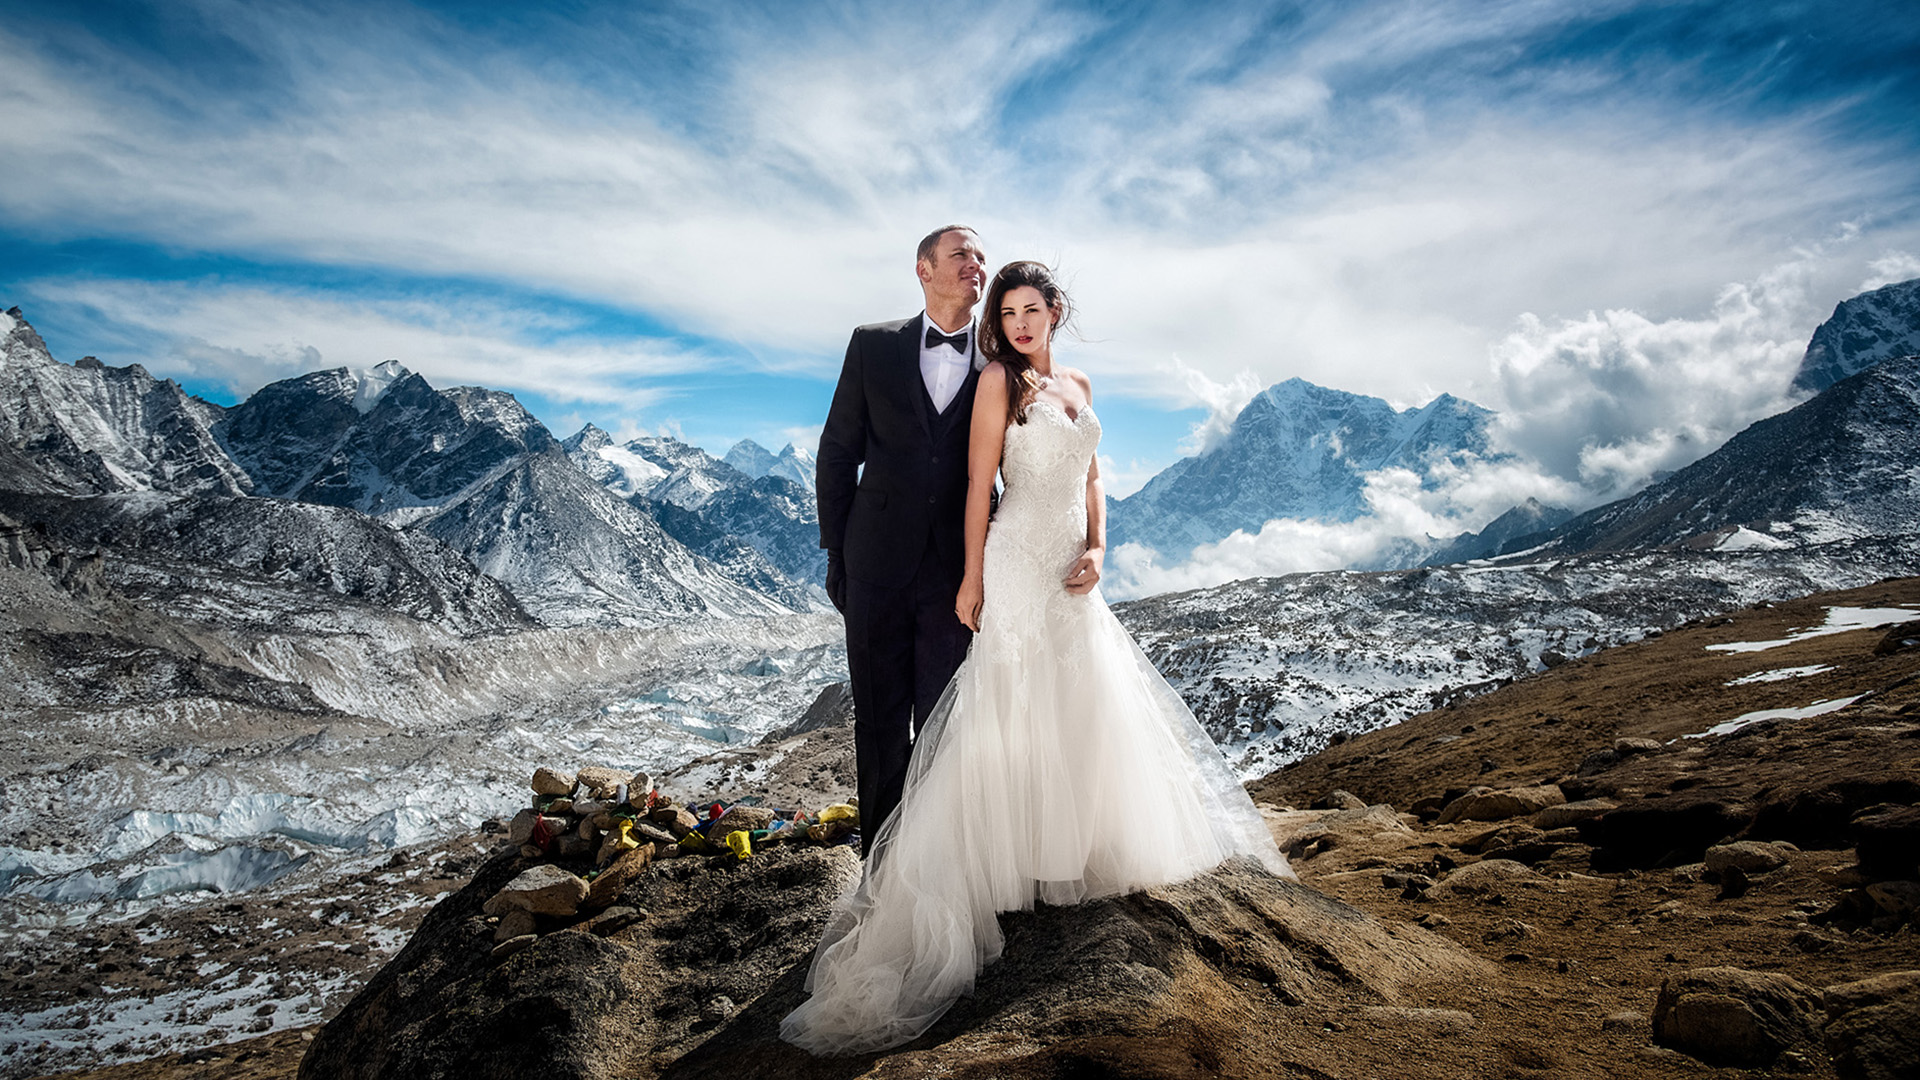 Mount Everest wedding: Couple marries at Nepal base camp